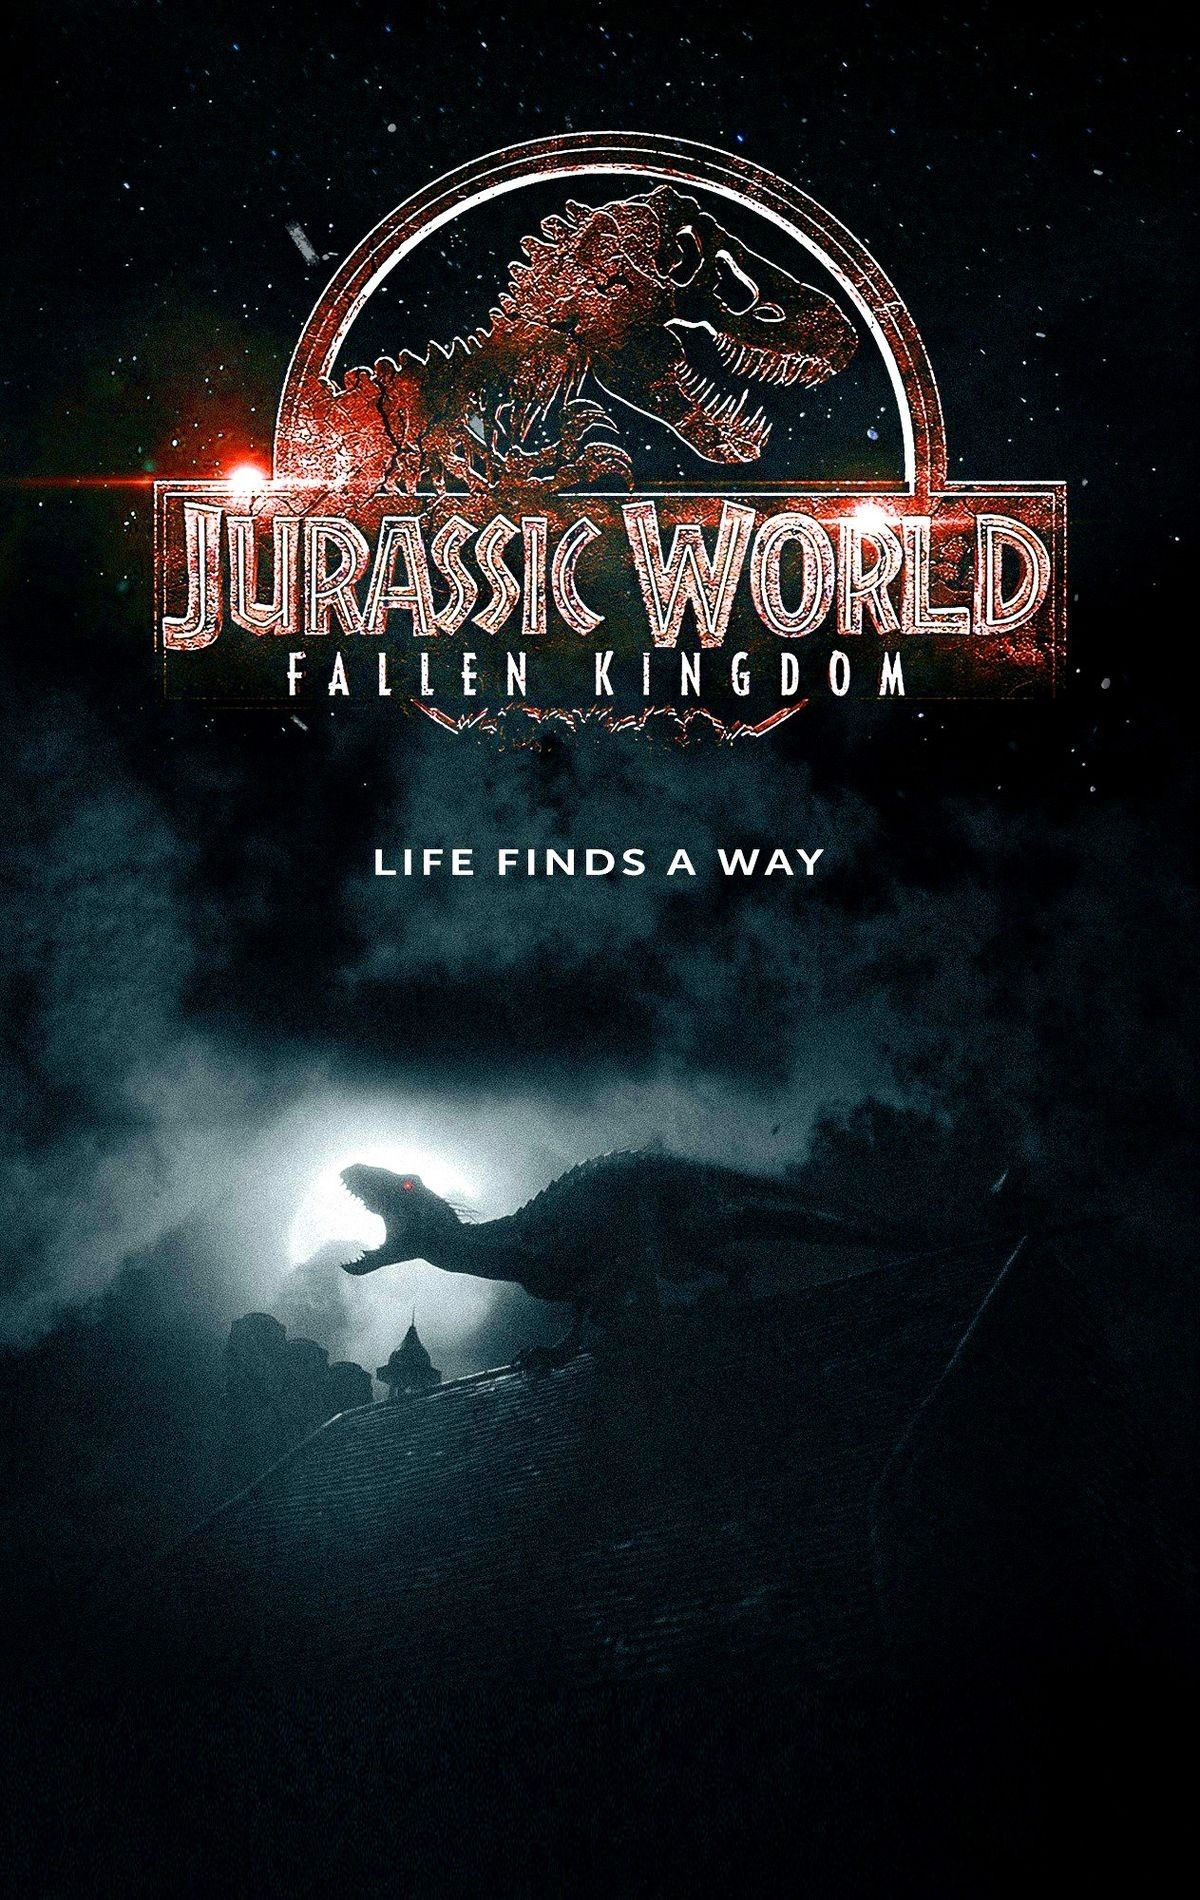 Jurassic World Fallen Kingdom Jurassic Park Movie Jurassic